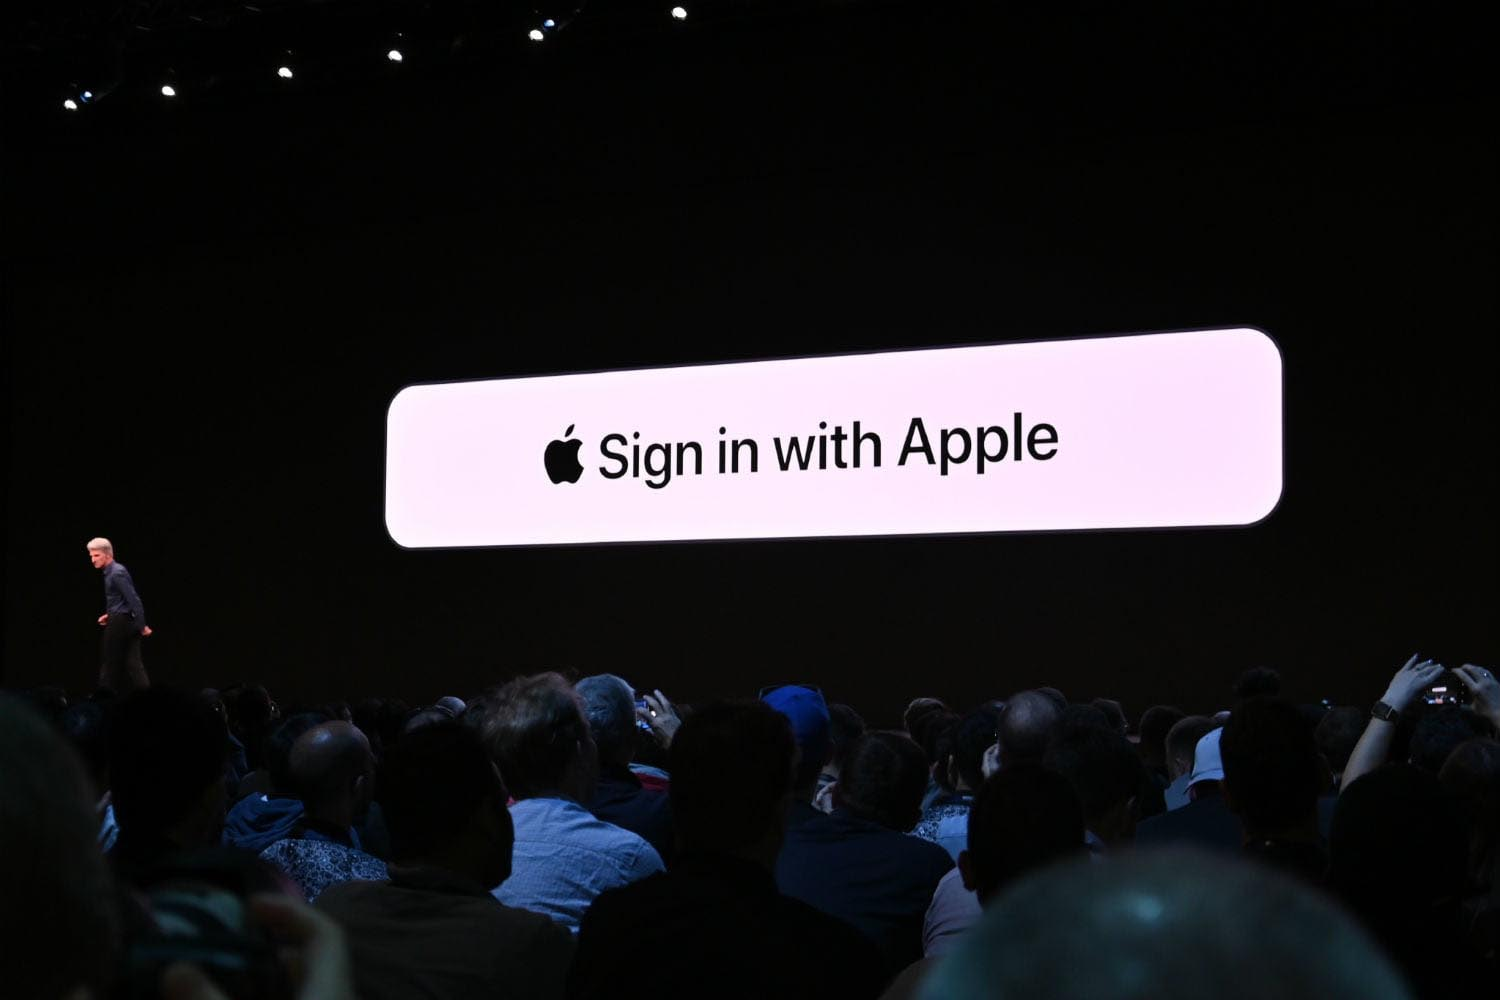 Sign in with Apple keynote